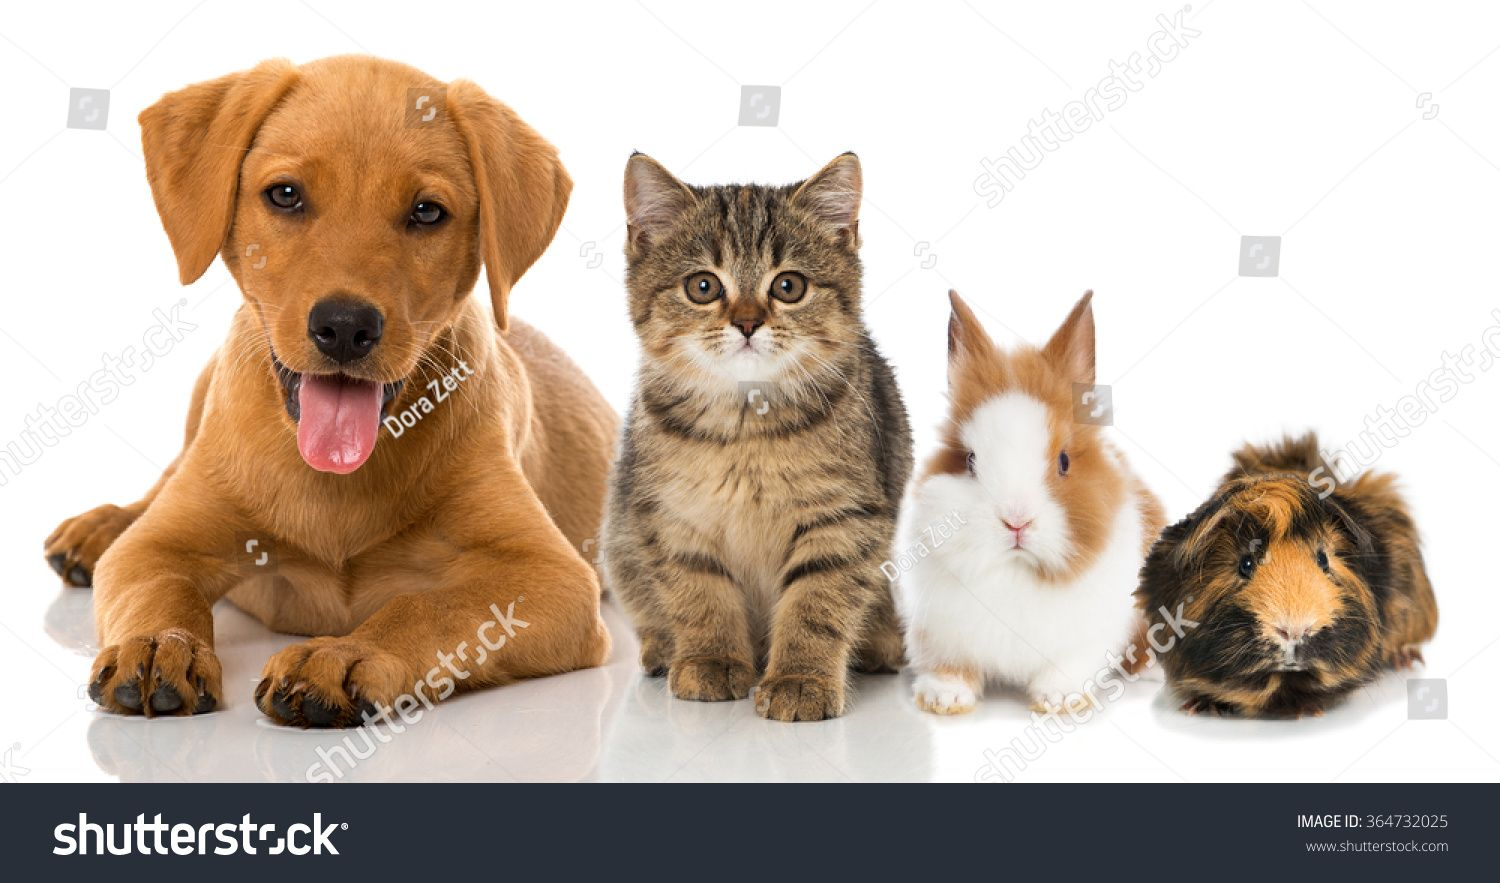 Pin by Malcolm Crowther on Vet Pictures Pets, Pet